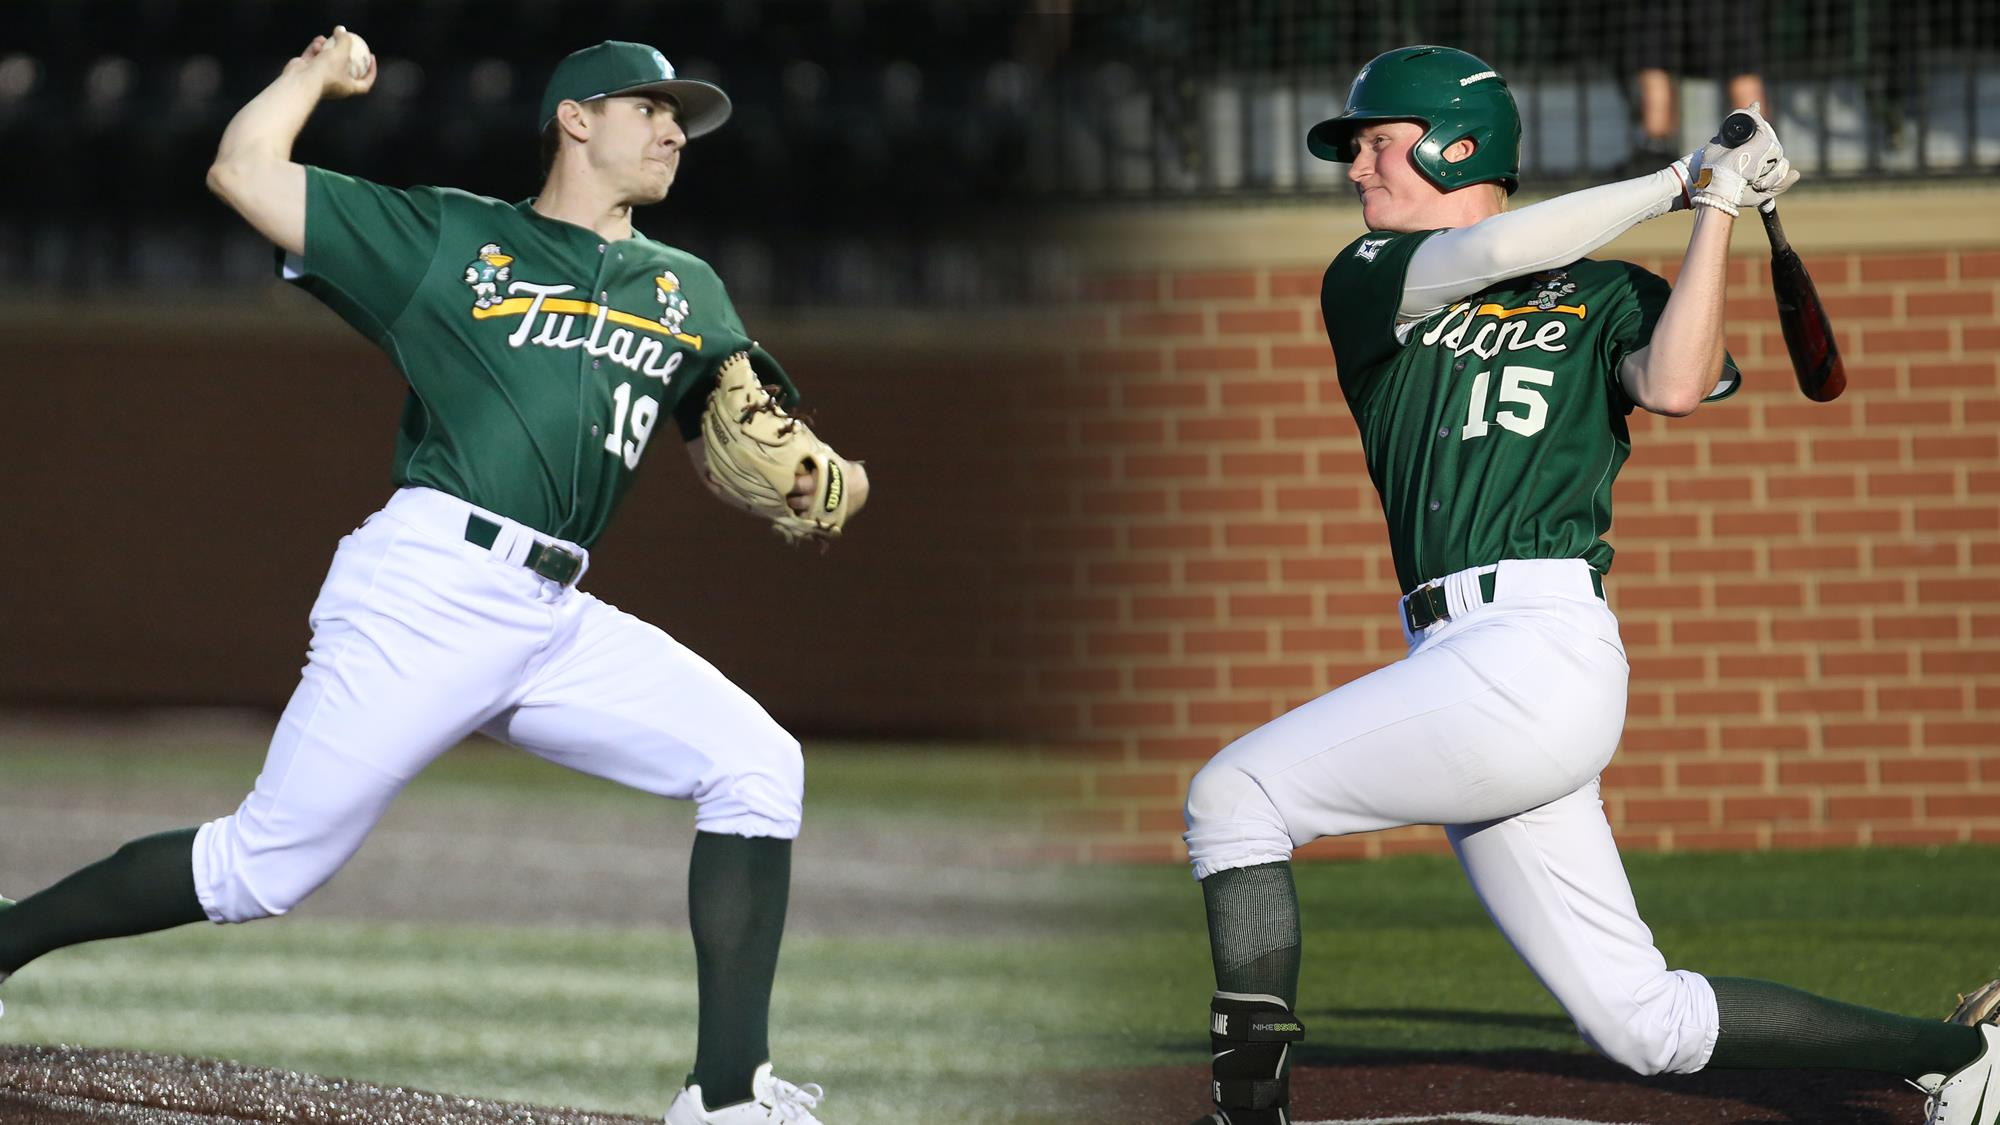 Tulane baseball junior right-hander Will McAffer and sophomore third baseman Kody Hoese